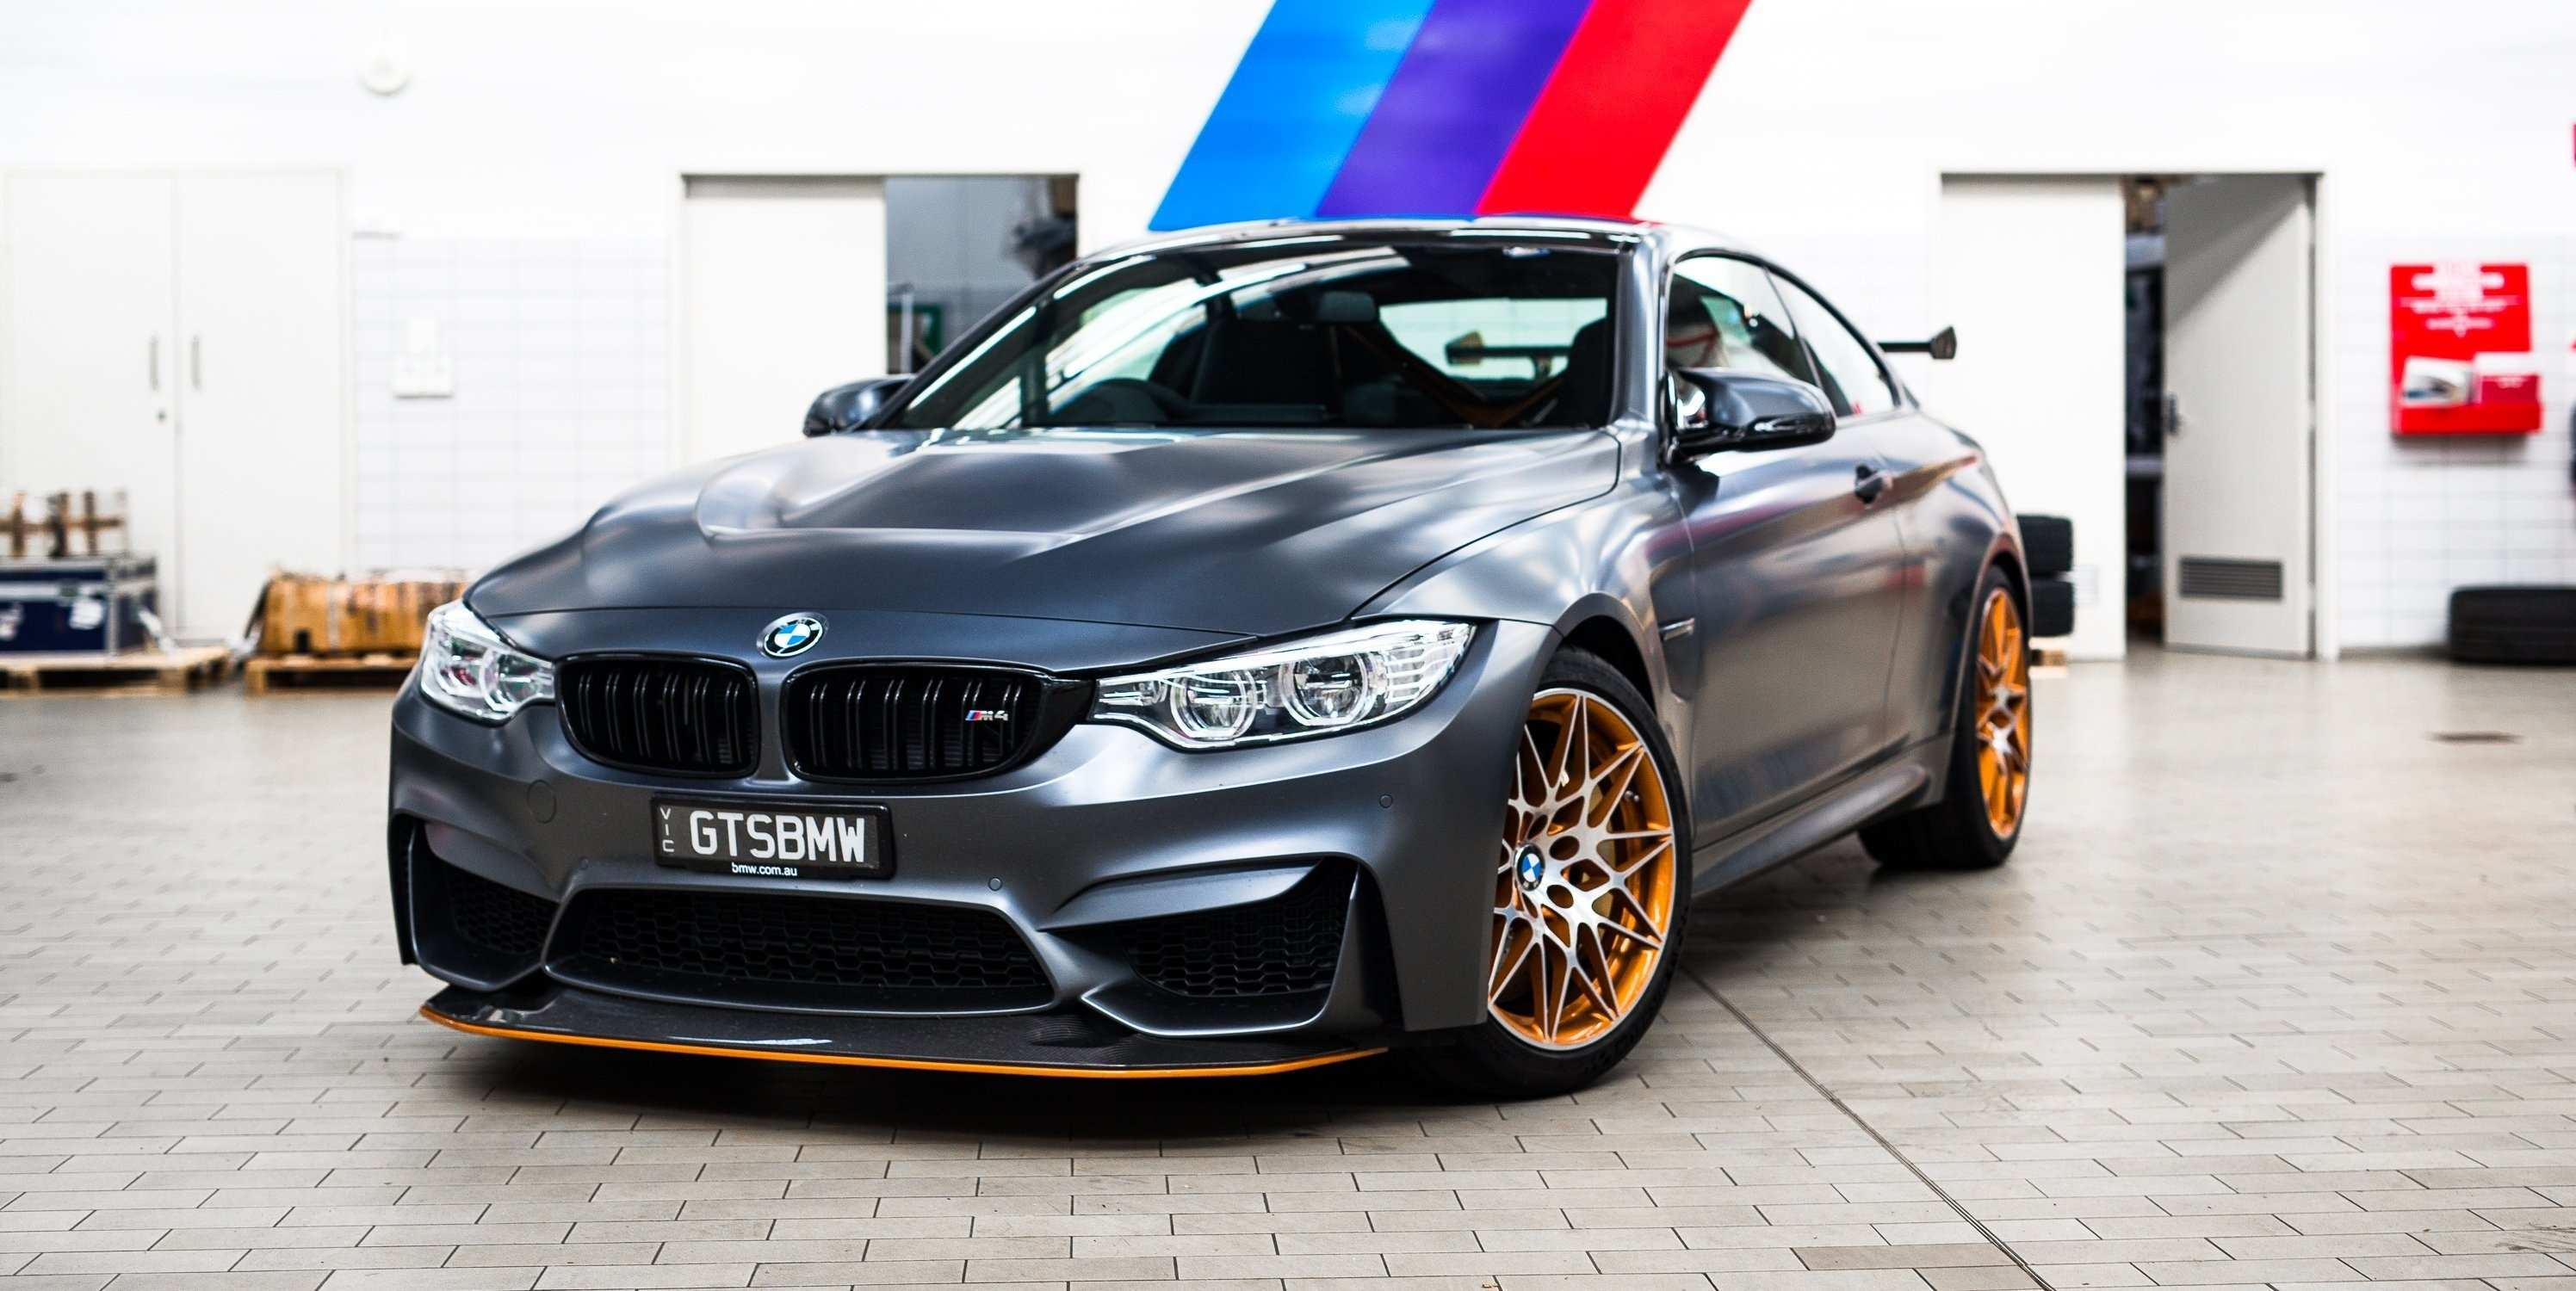 64 The 2019 BMW M4 Gts Price And Review